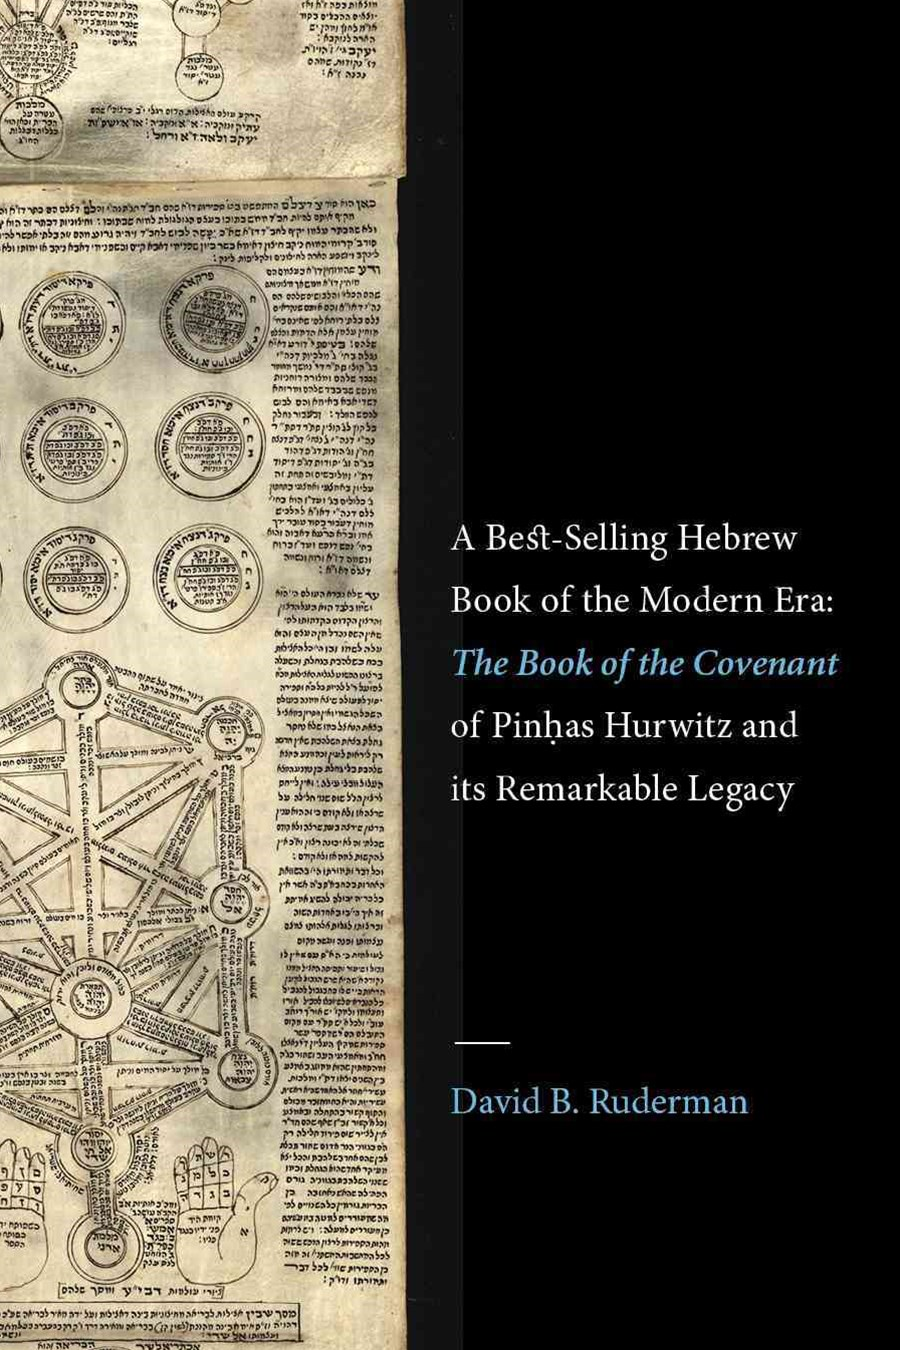 A Best-Selling Hebrew Book of the Modern Era